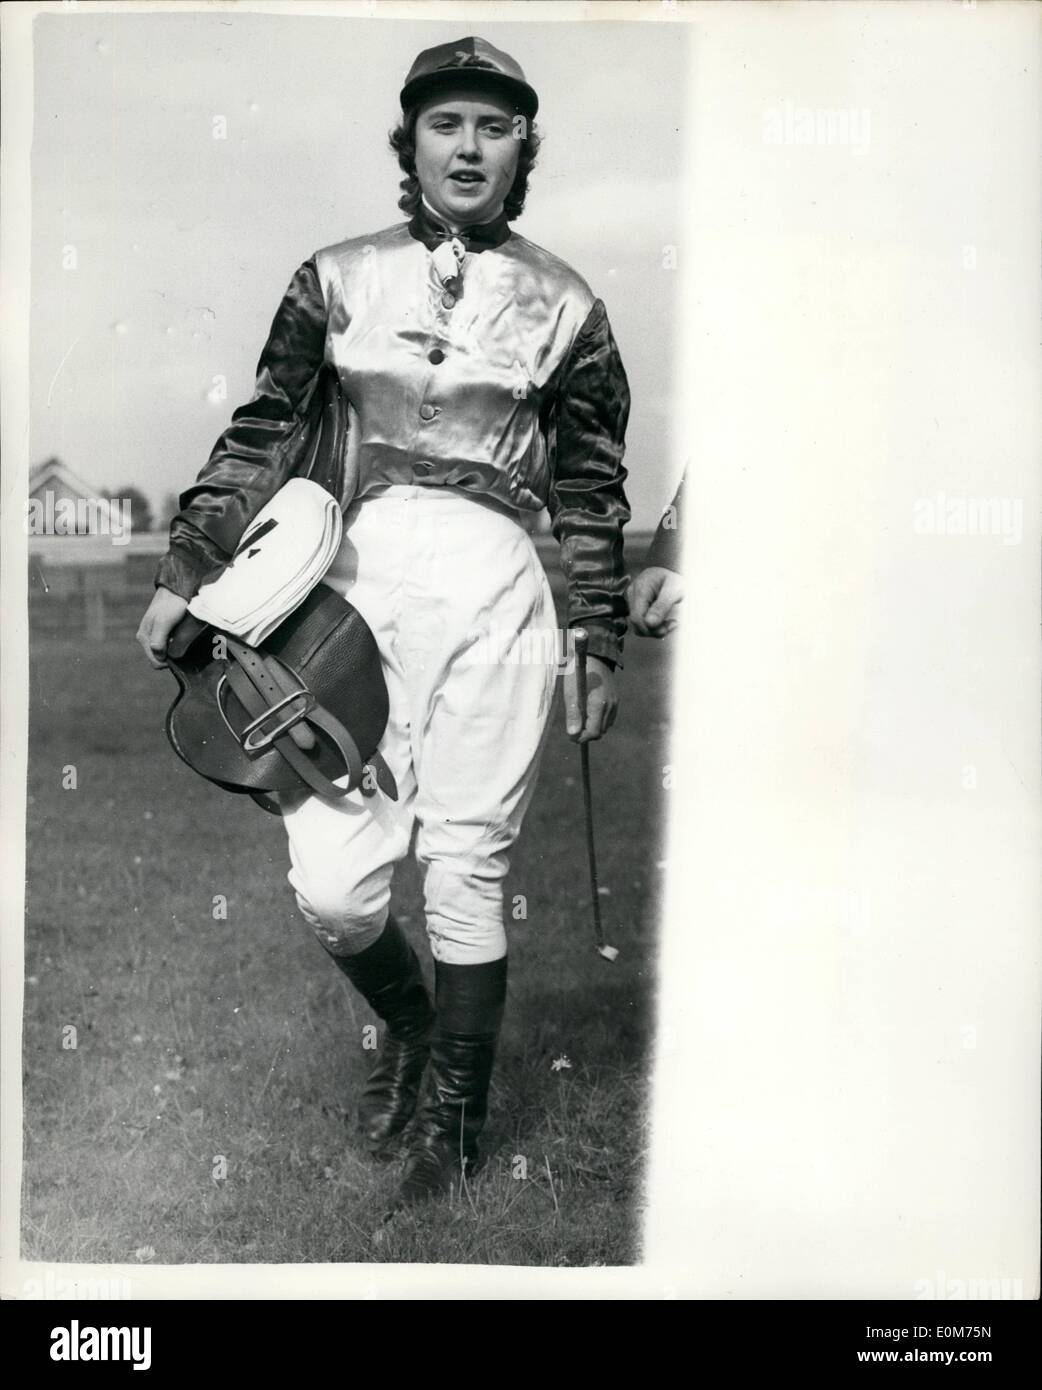 Oct. 10, 1953 - The Newmarket Town Plate: The only horse race in women can become jockeys - The Newmarket Town Plate Stock Photo